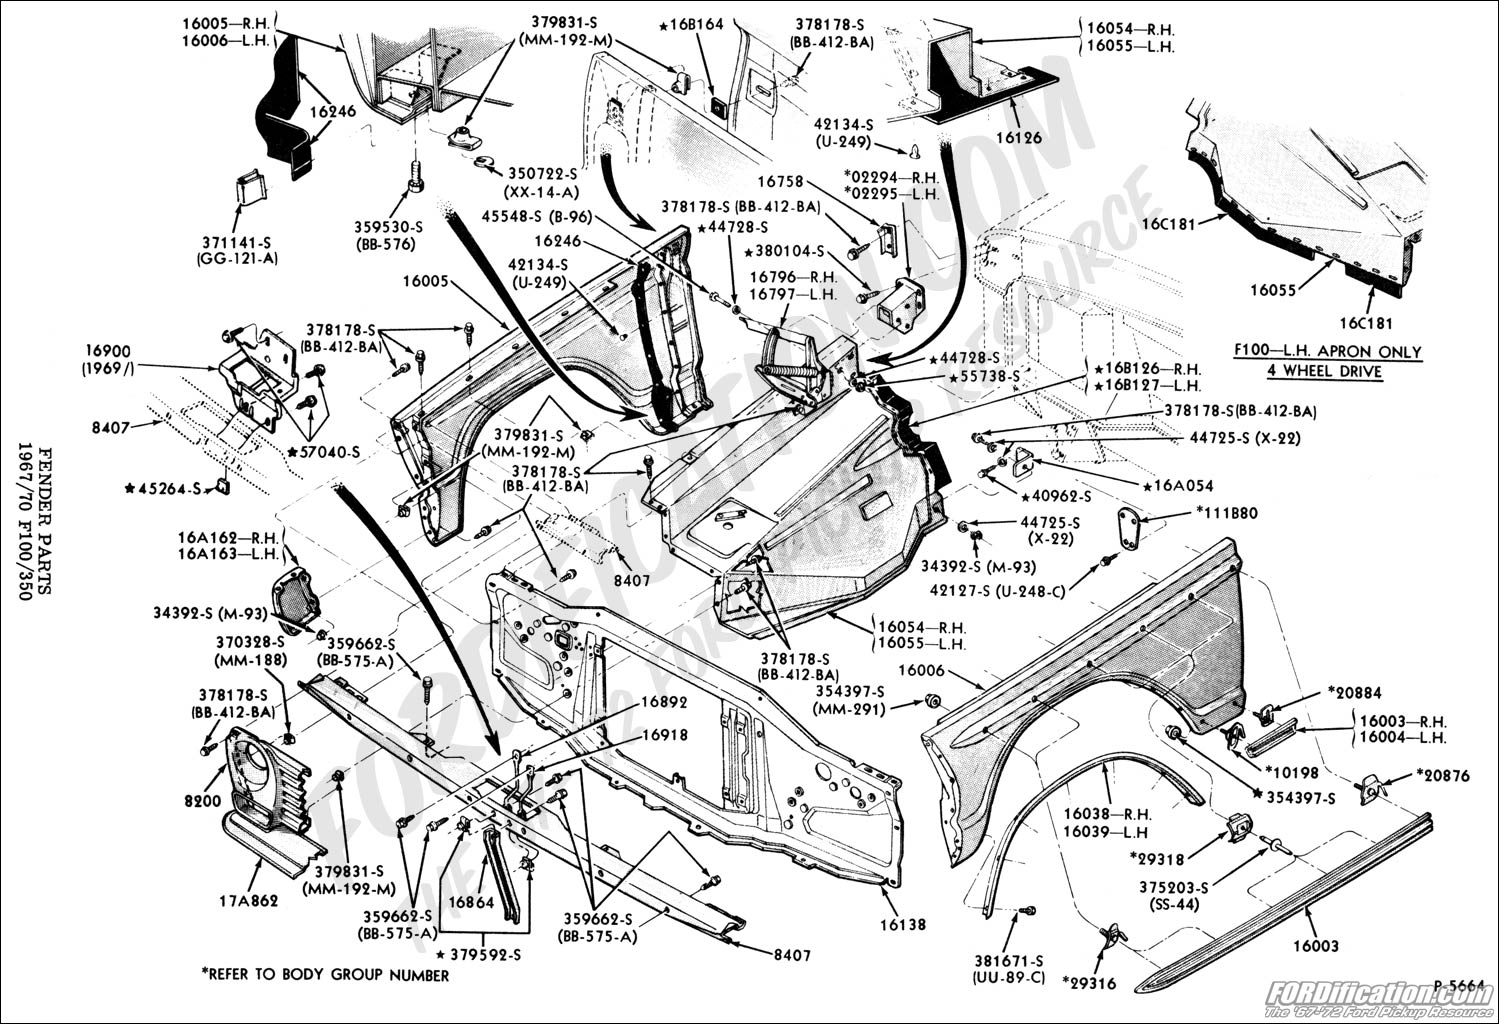 1966 Chevy Truck Ignition Switch Wiring Diagram also 1973pdm also Opc mr2oc together with 2005 F150 Engine 4 6  ponents besides 281806. on 2001 ford mustang fenders